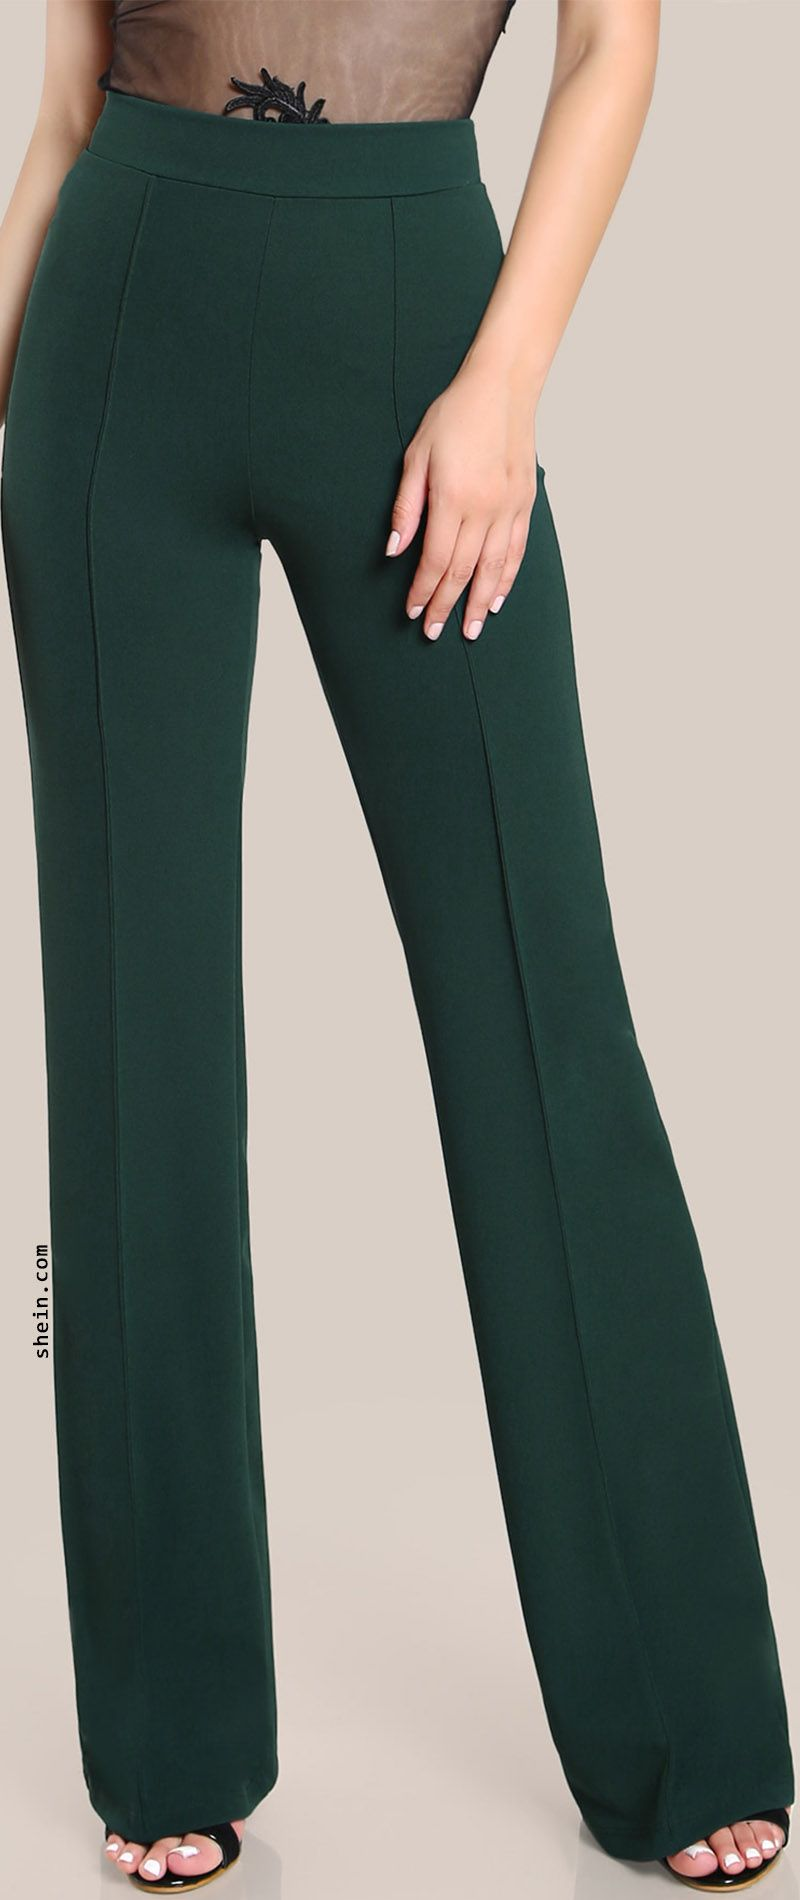 8025453254 High Rise Piped Dress Pants | Spotlights | Fashion, Fashion outfits ...